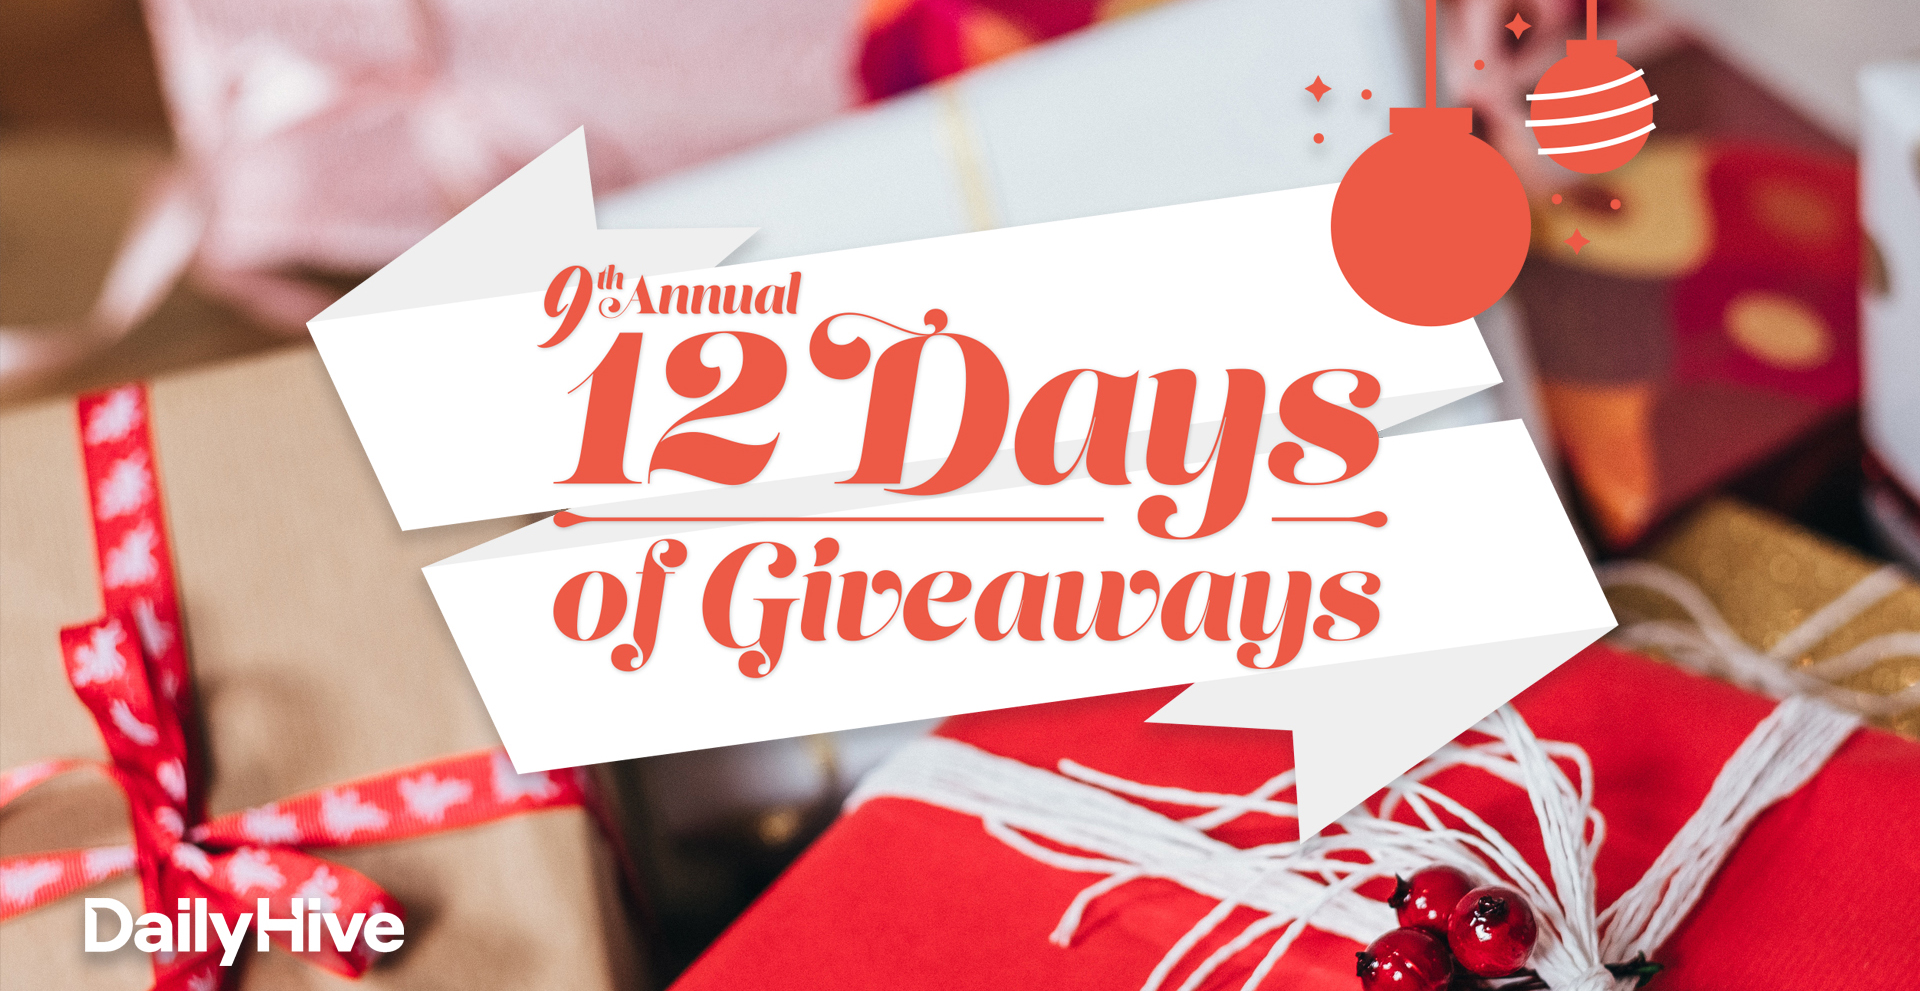 $70,000 in prizes up for grabs in our annual 12 Days of Giveaways